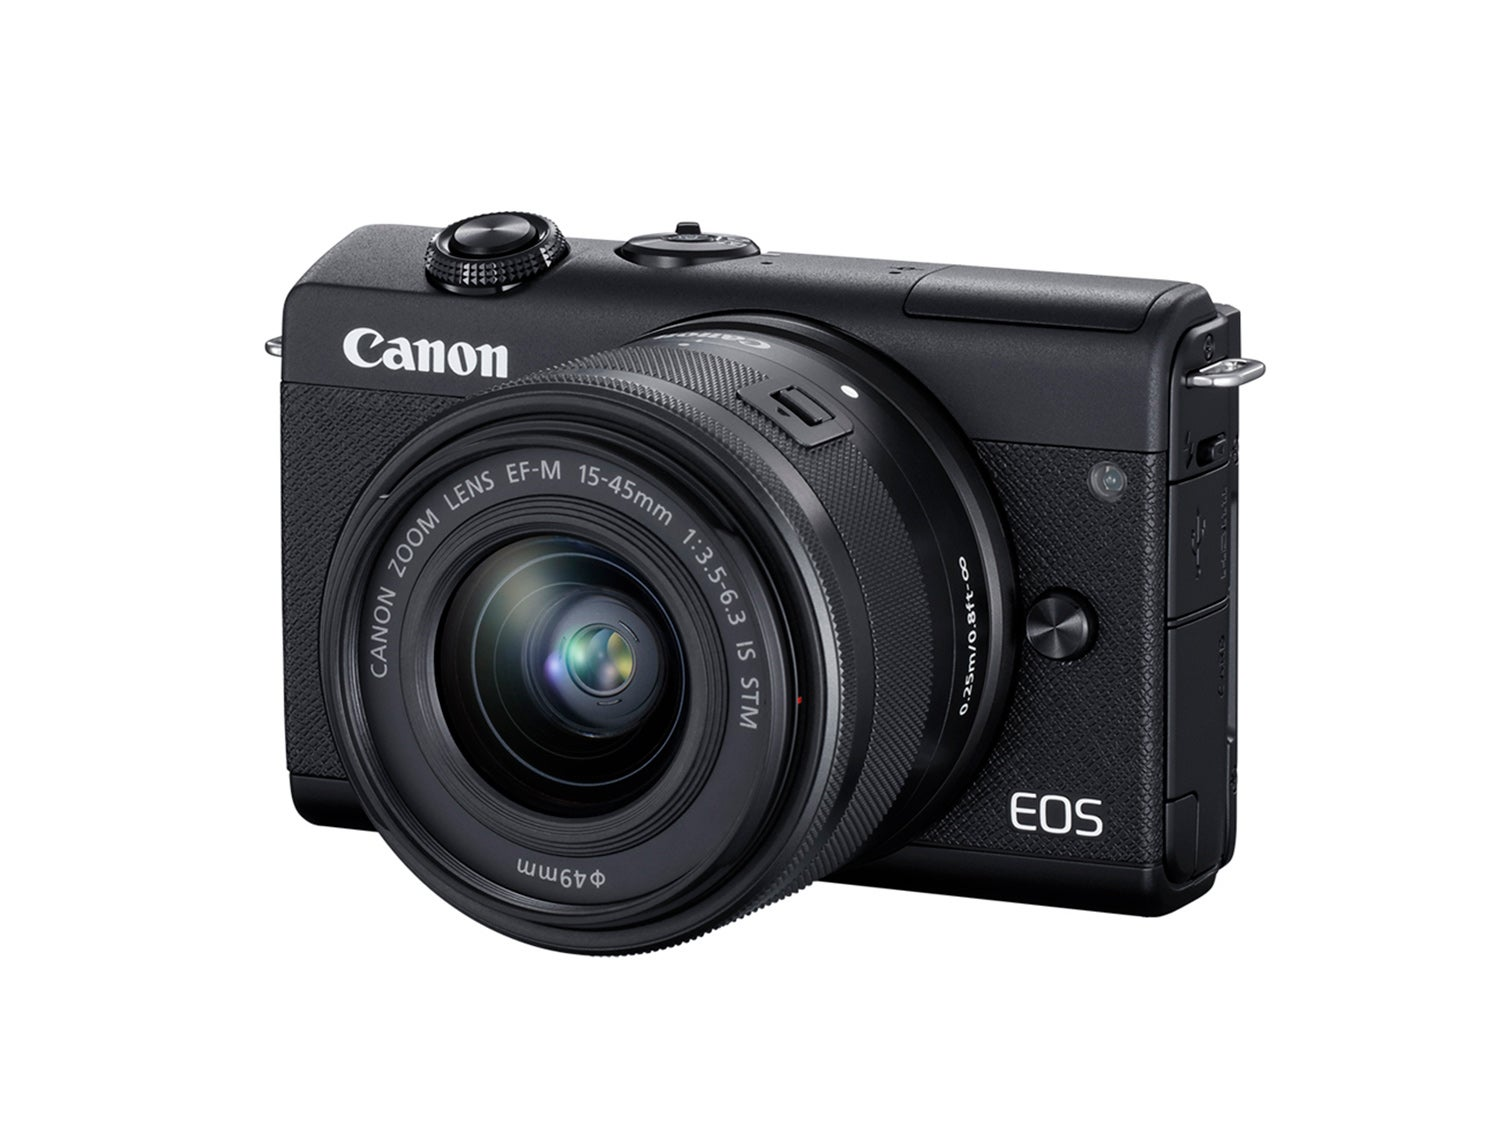 Canon's new EOS M200 entry-level mirrorless camera brings eye-detection and 4K video